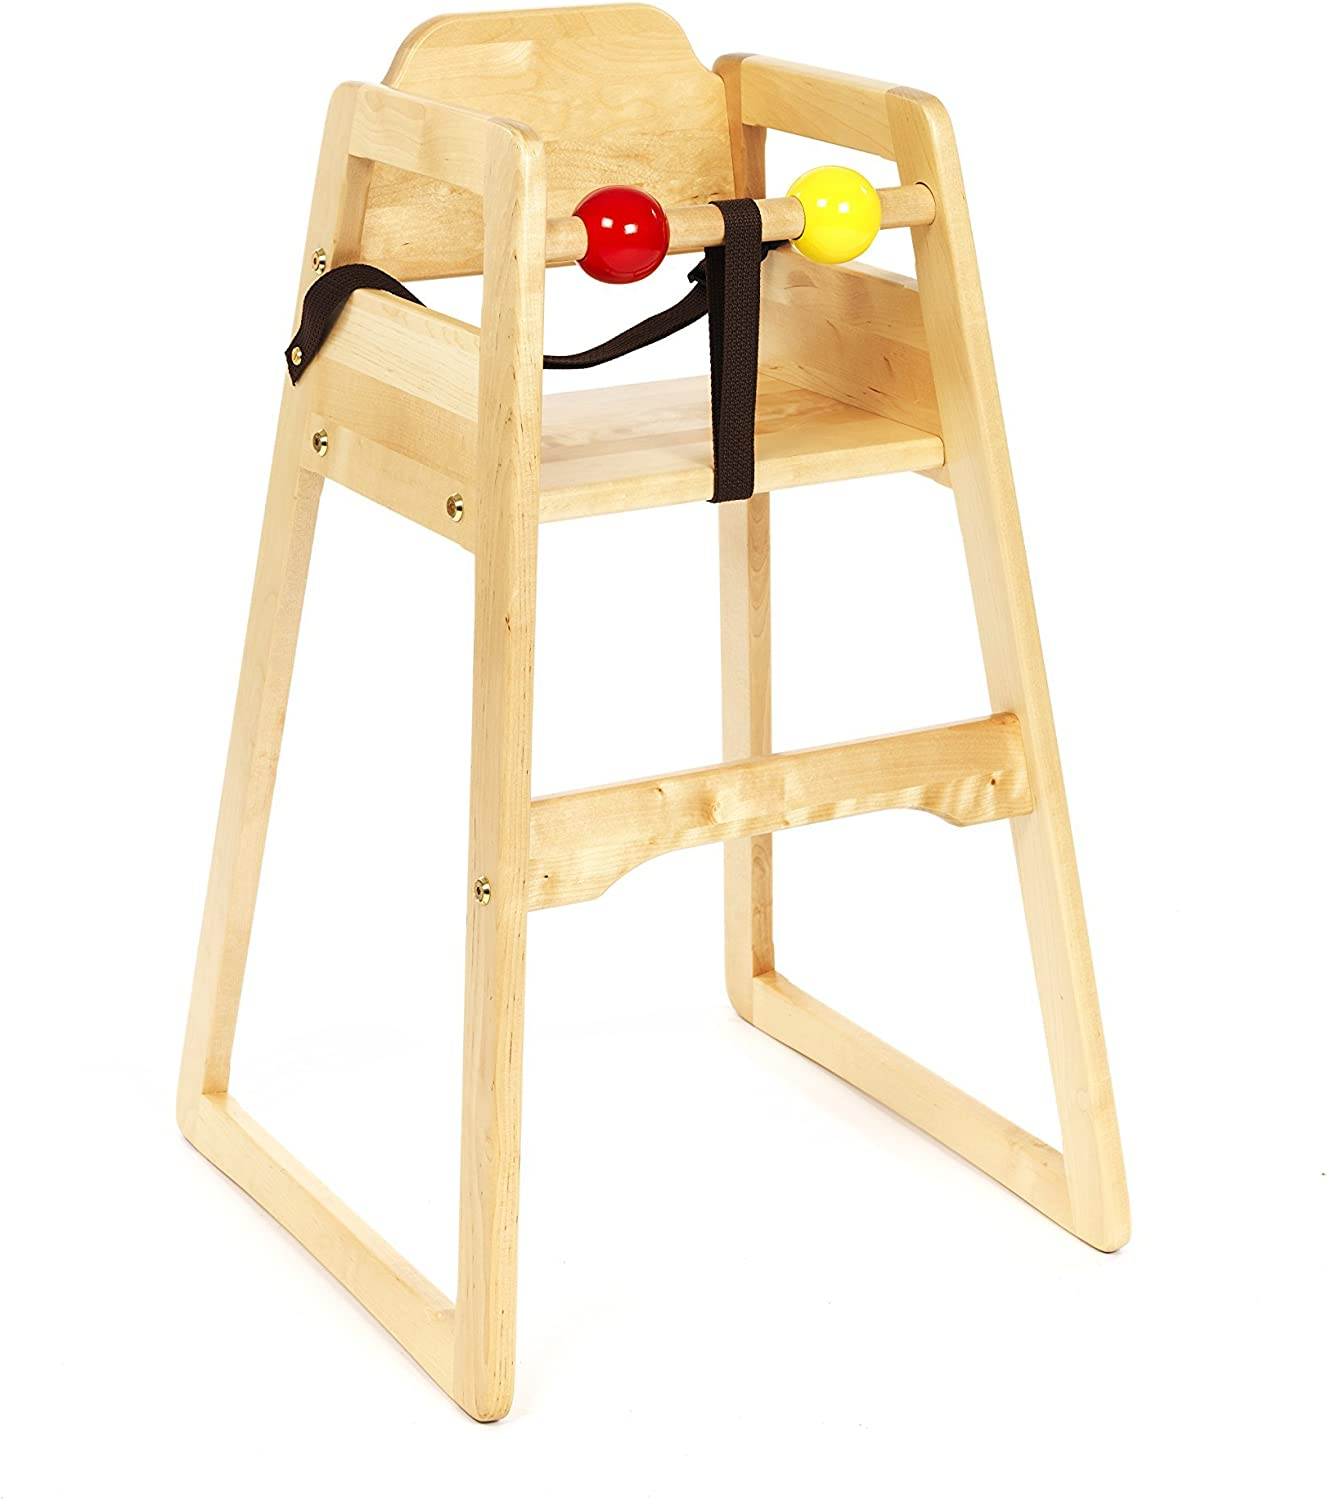 The Award Winning Original No Tray High Chair Stackable Baby Childrens Feeding Wooden Restaurant or Home High Chair All Our High Chairs Come With 1